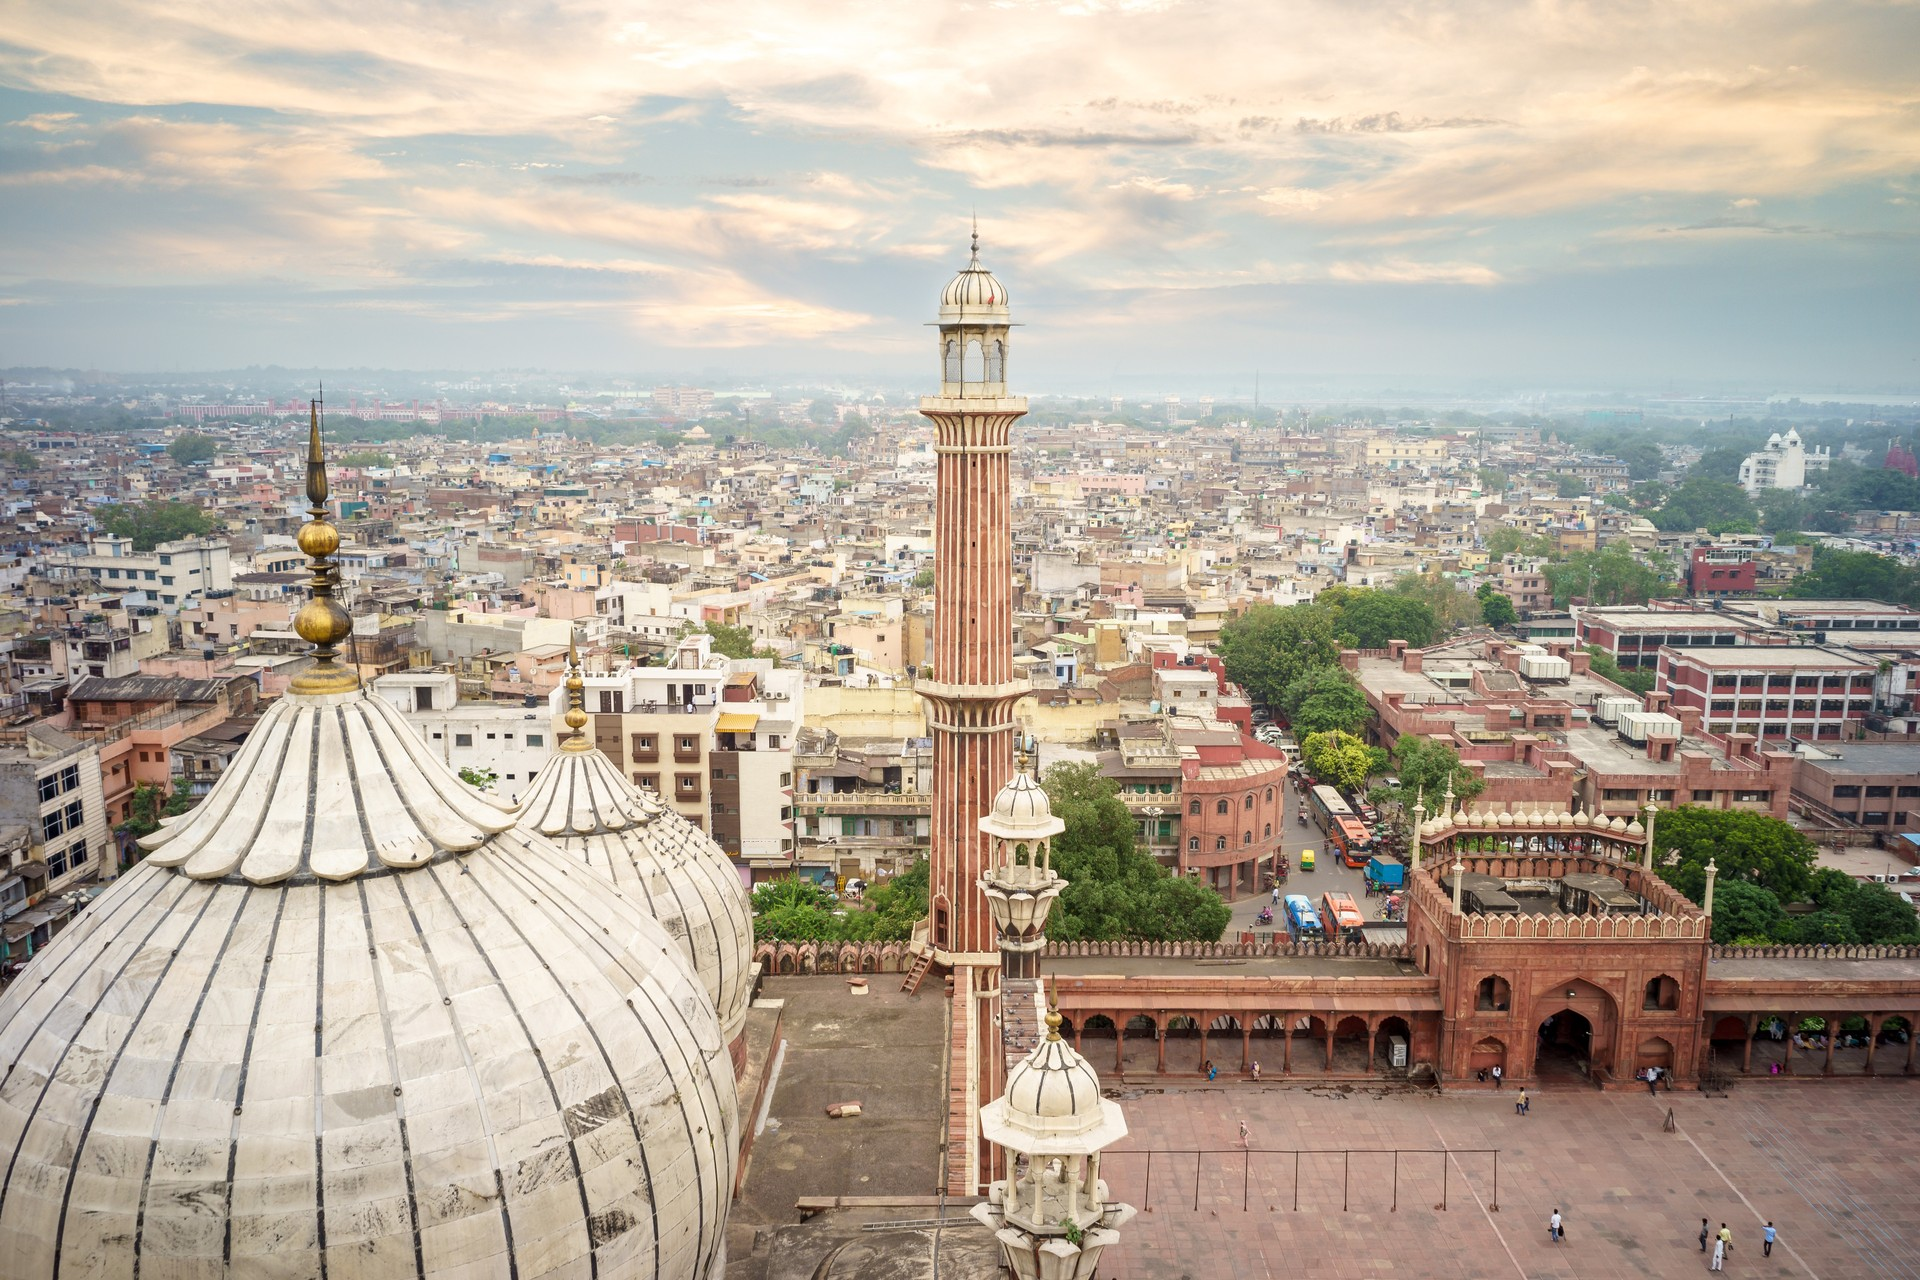 Aerial view of Old Delhi from the roof of Jama Masjid